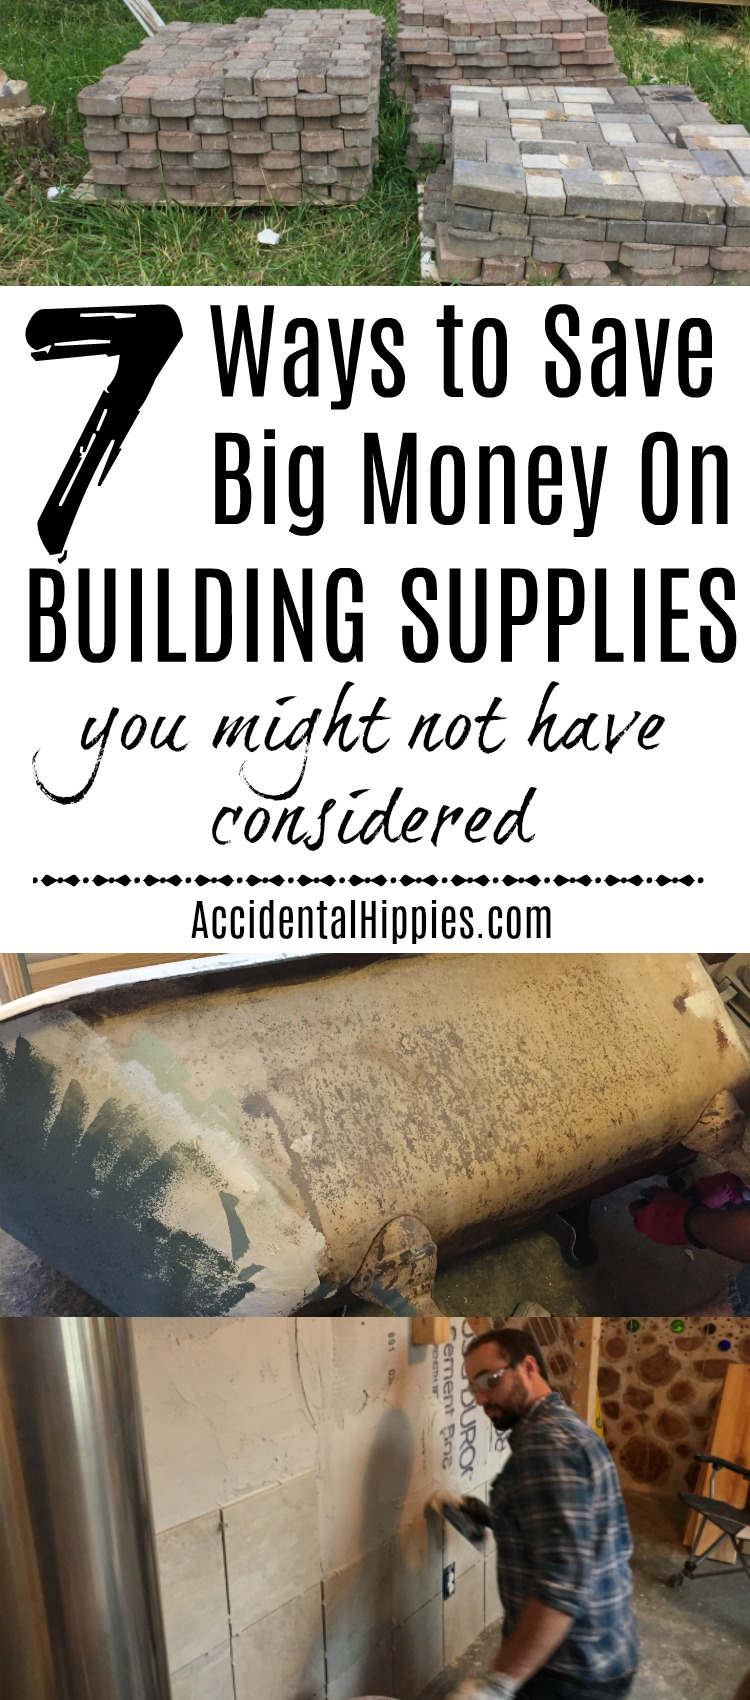 Reader suggestions for even more ways to save money on building supplies. I wish we'd done more of number 3!